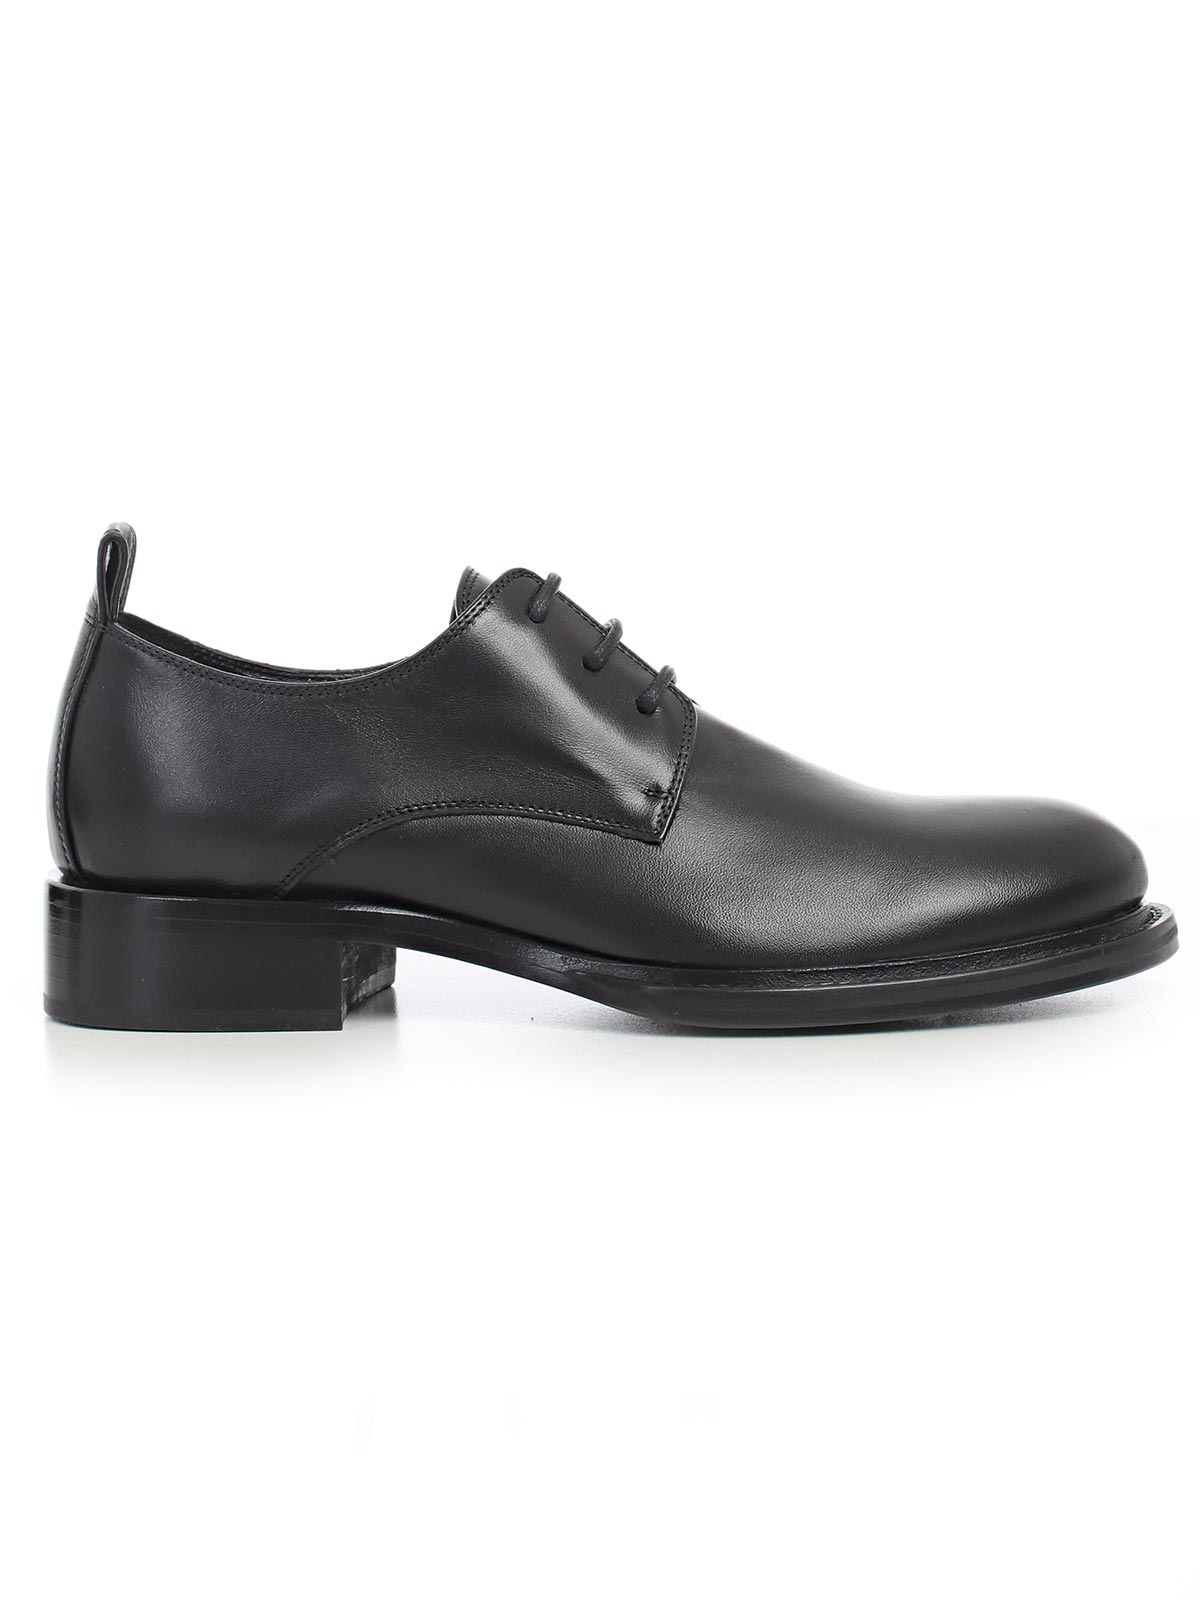 Picture of Ann Demeulemester Shoes